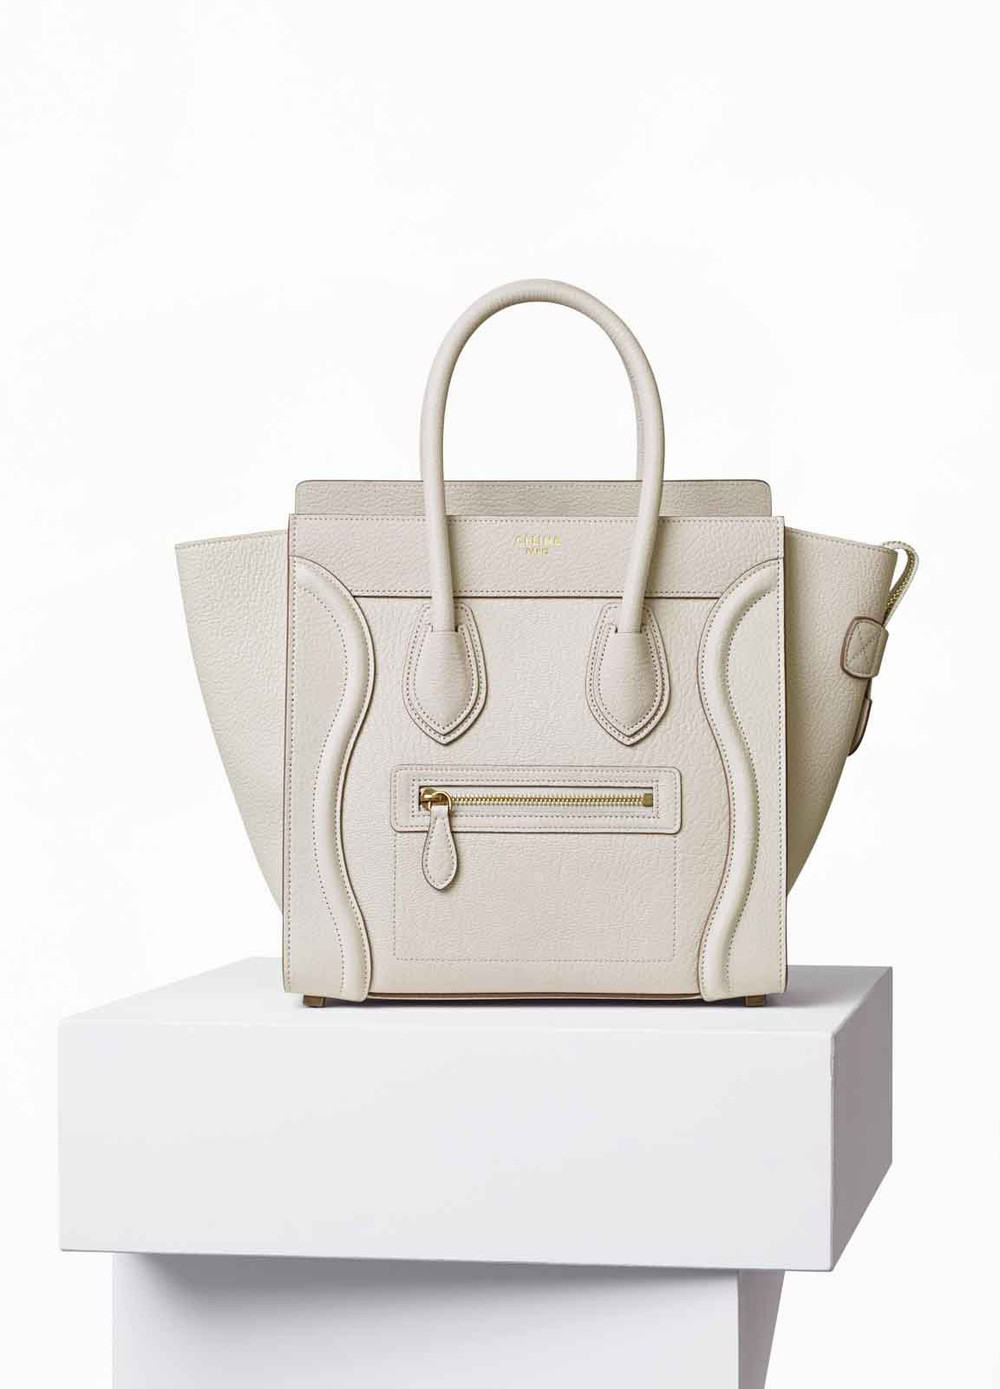 this bag is unbelievably gorgeous, crazy expensive and super impractical. seriously? white bag with kids? but that doesn't stop me from wanting it. school won't mind if i skip tuition for a bit, right? celine phantom bag. get it  here.